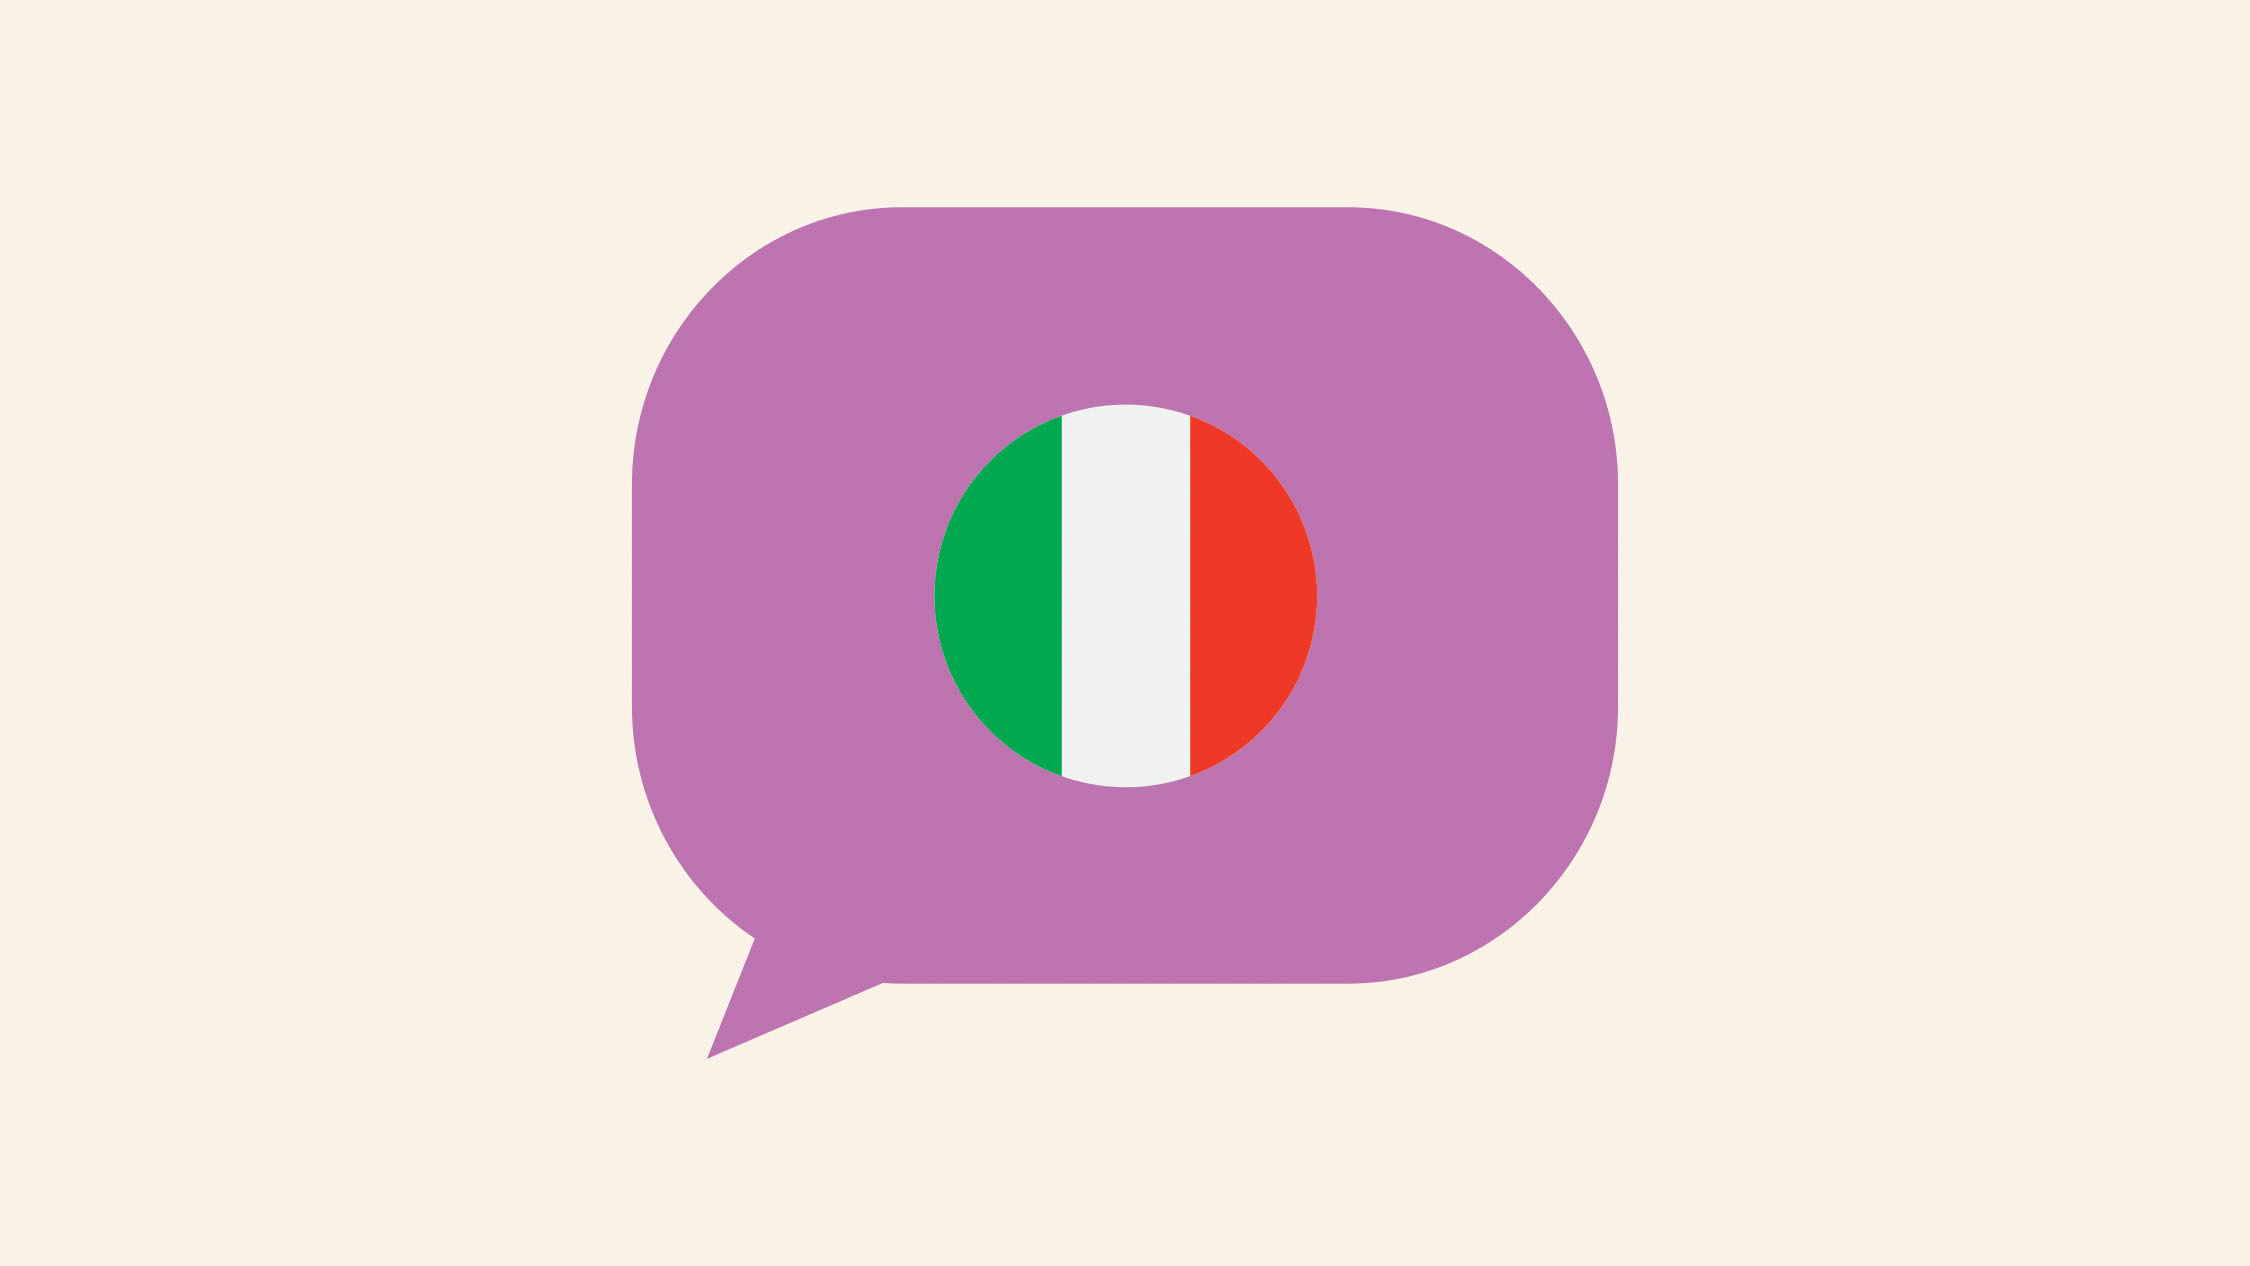 Learn a language - Italian